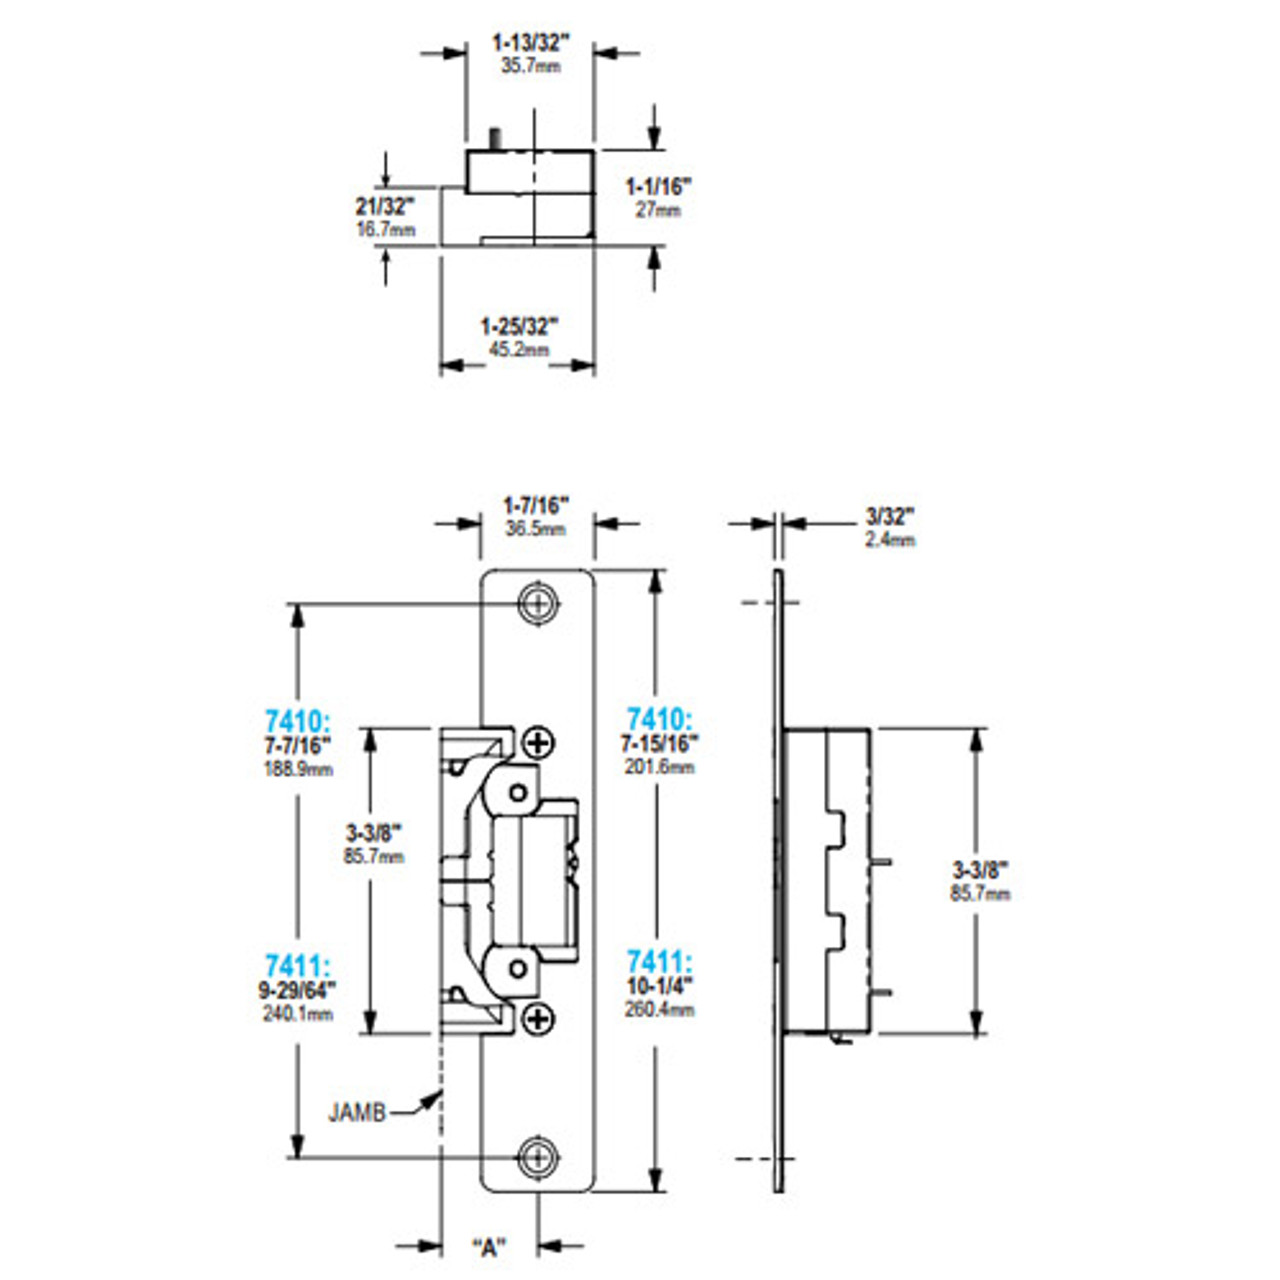 7410 Diagram And Gate - Era Electrical Schemes on